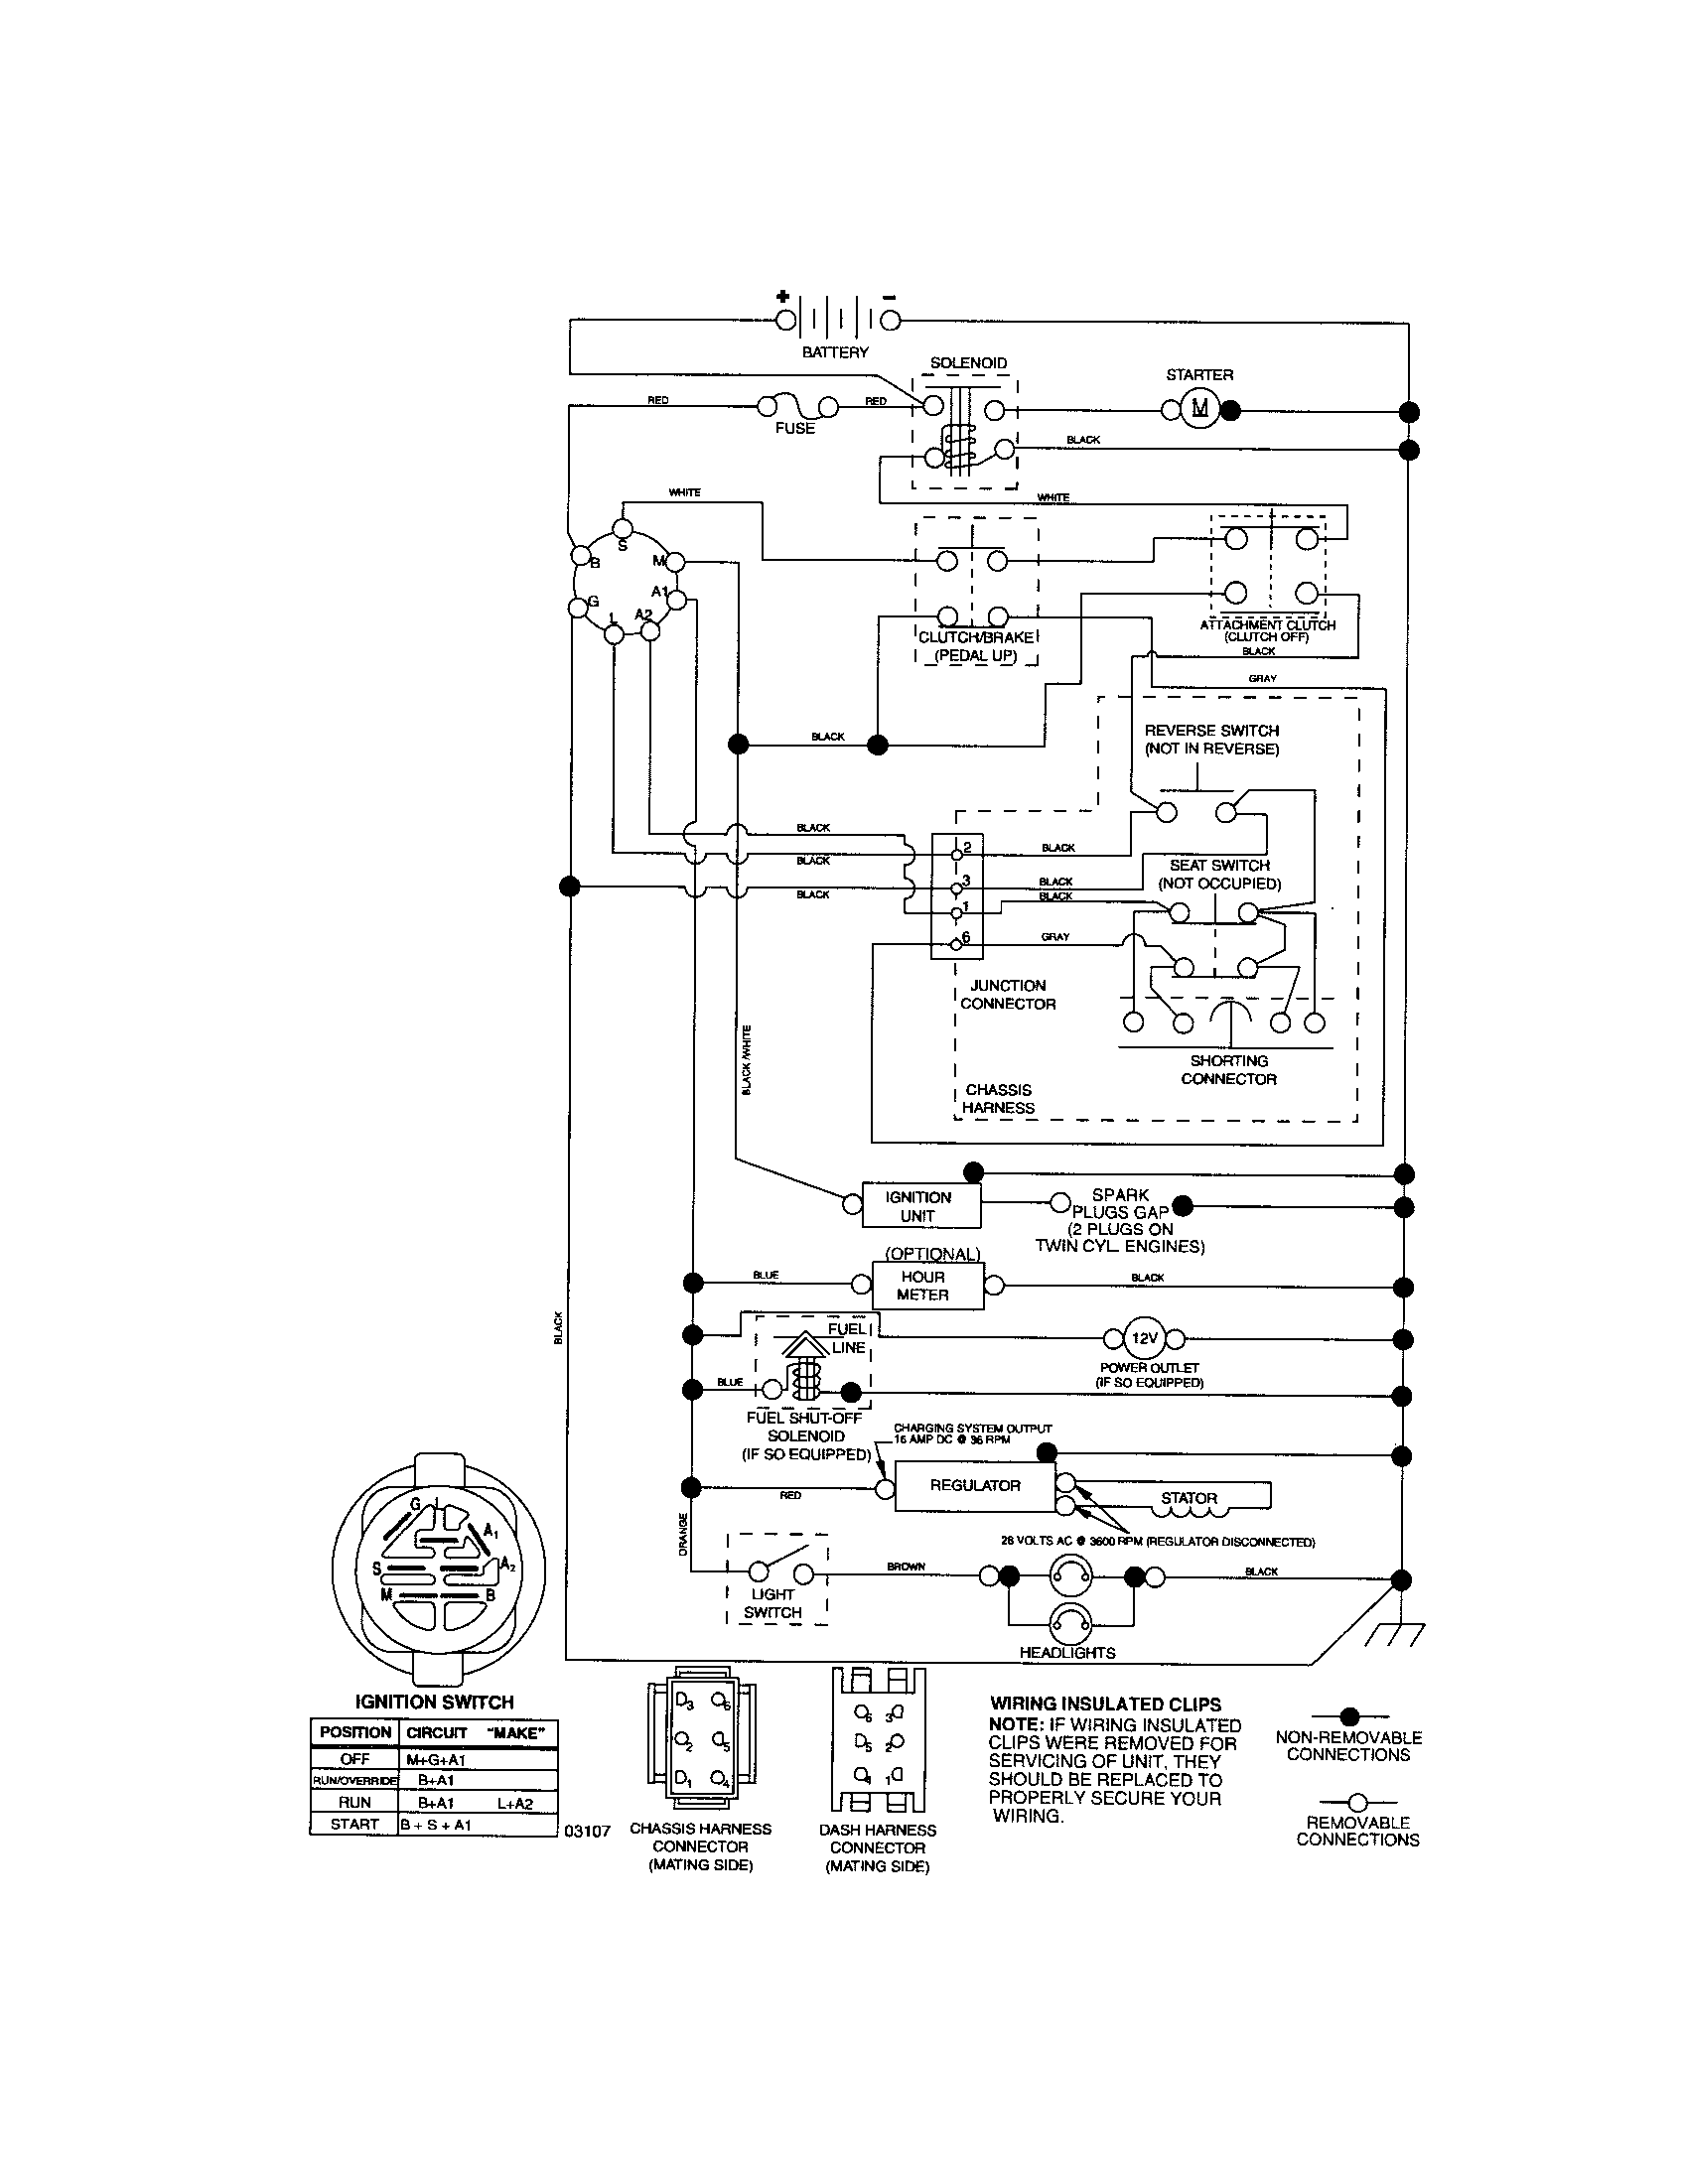 6af5f1447fd13c8443376822ddc1e105 craftsman riding mower electrical diagram wiring diagram craftsman lawn tractor wiring diagram at edmiracle.co